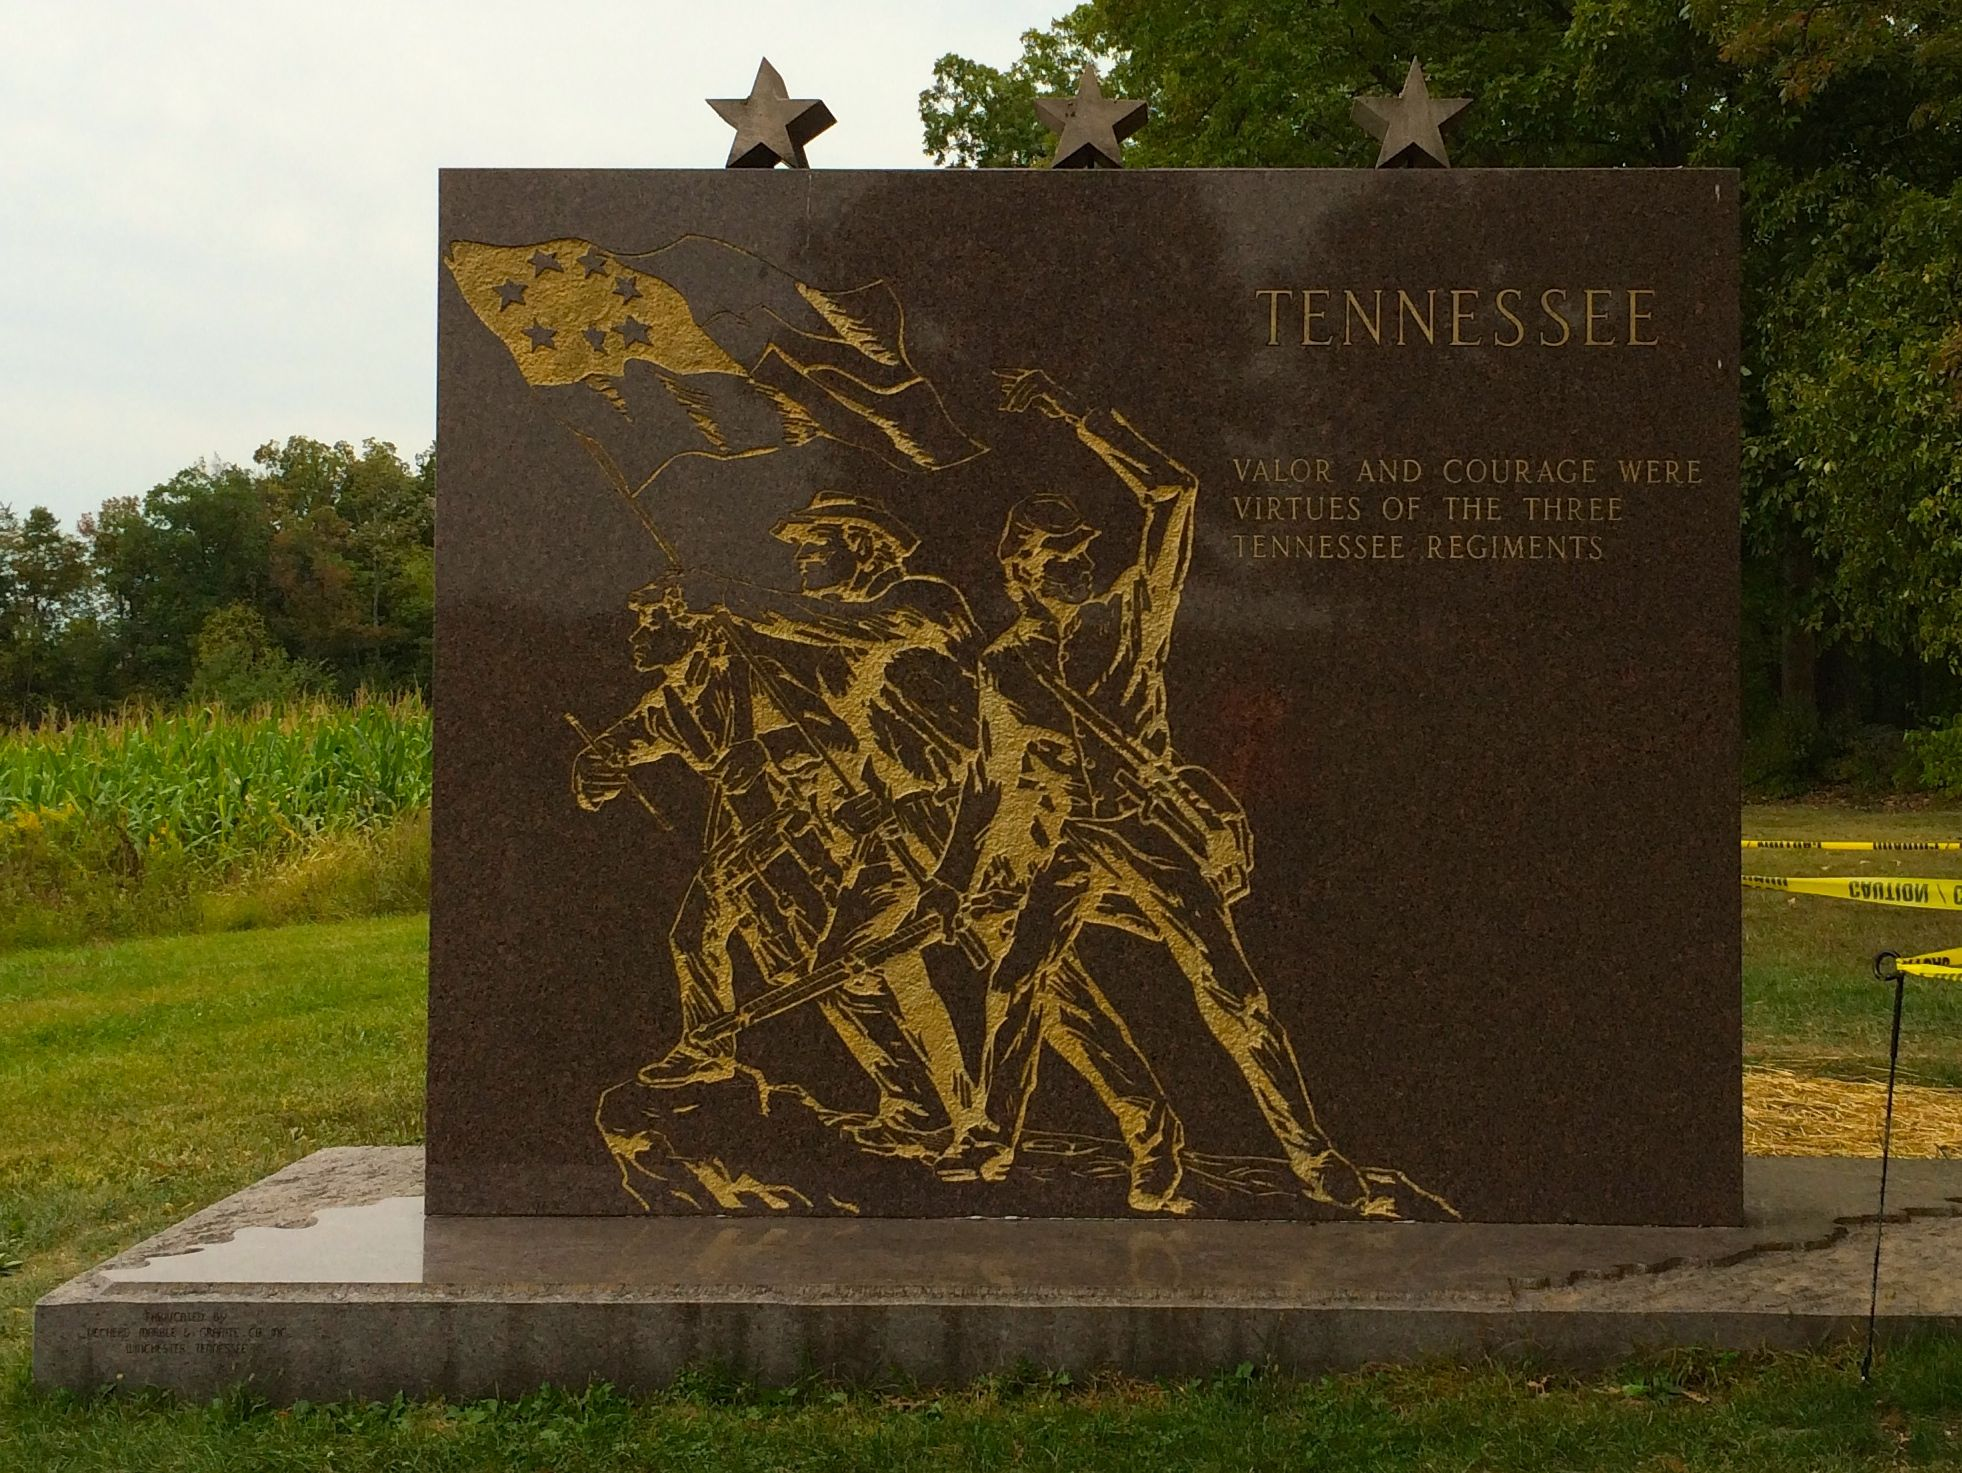 Tennessee memorial